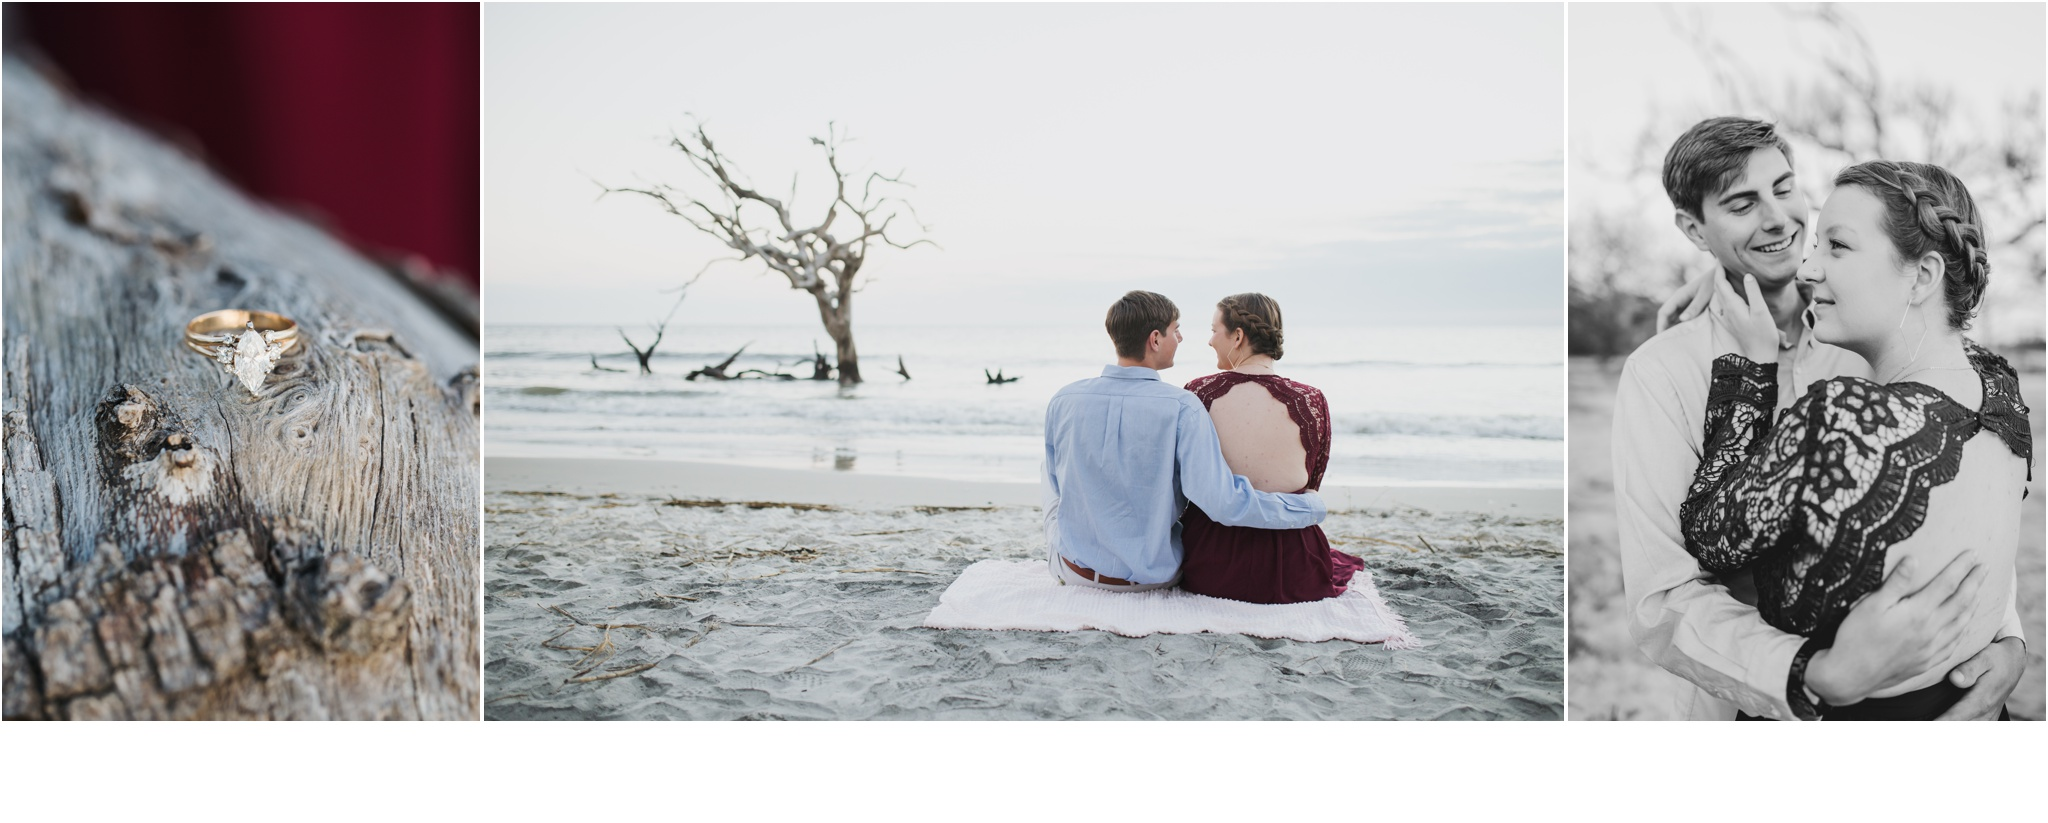 Rainey_Gregg_Photography_St._Simons_Island_Georgia_California_Wedding_Portrait_Photography_1557.jpg